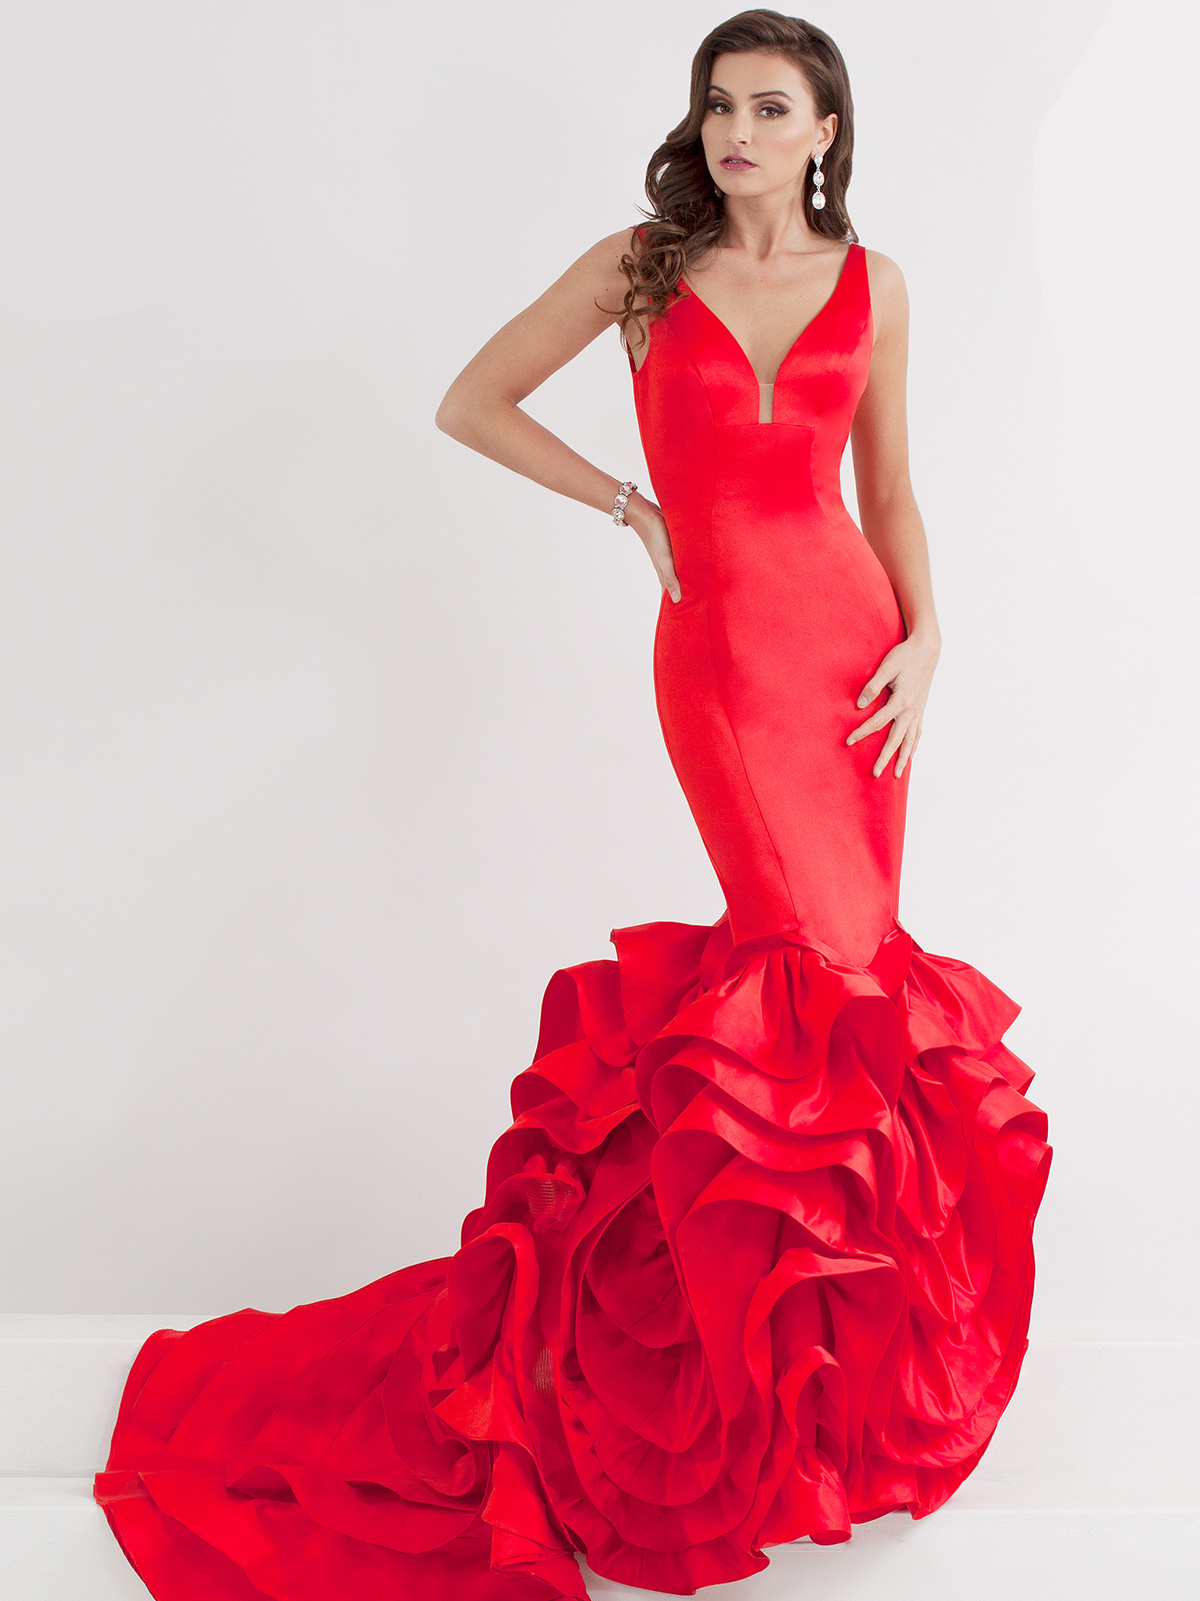 Prima Donna 5875 Plunging Bodice Pageant Dress|PageantDesigns.com